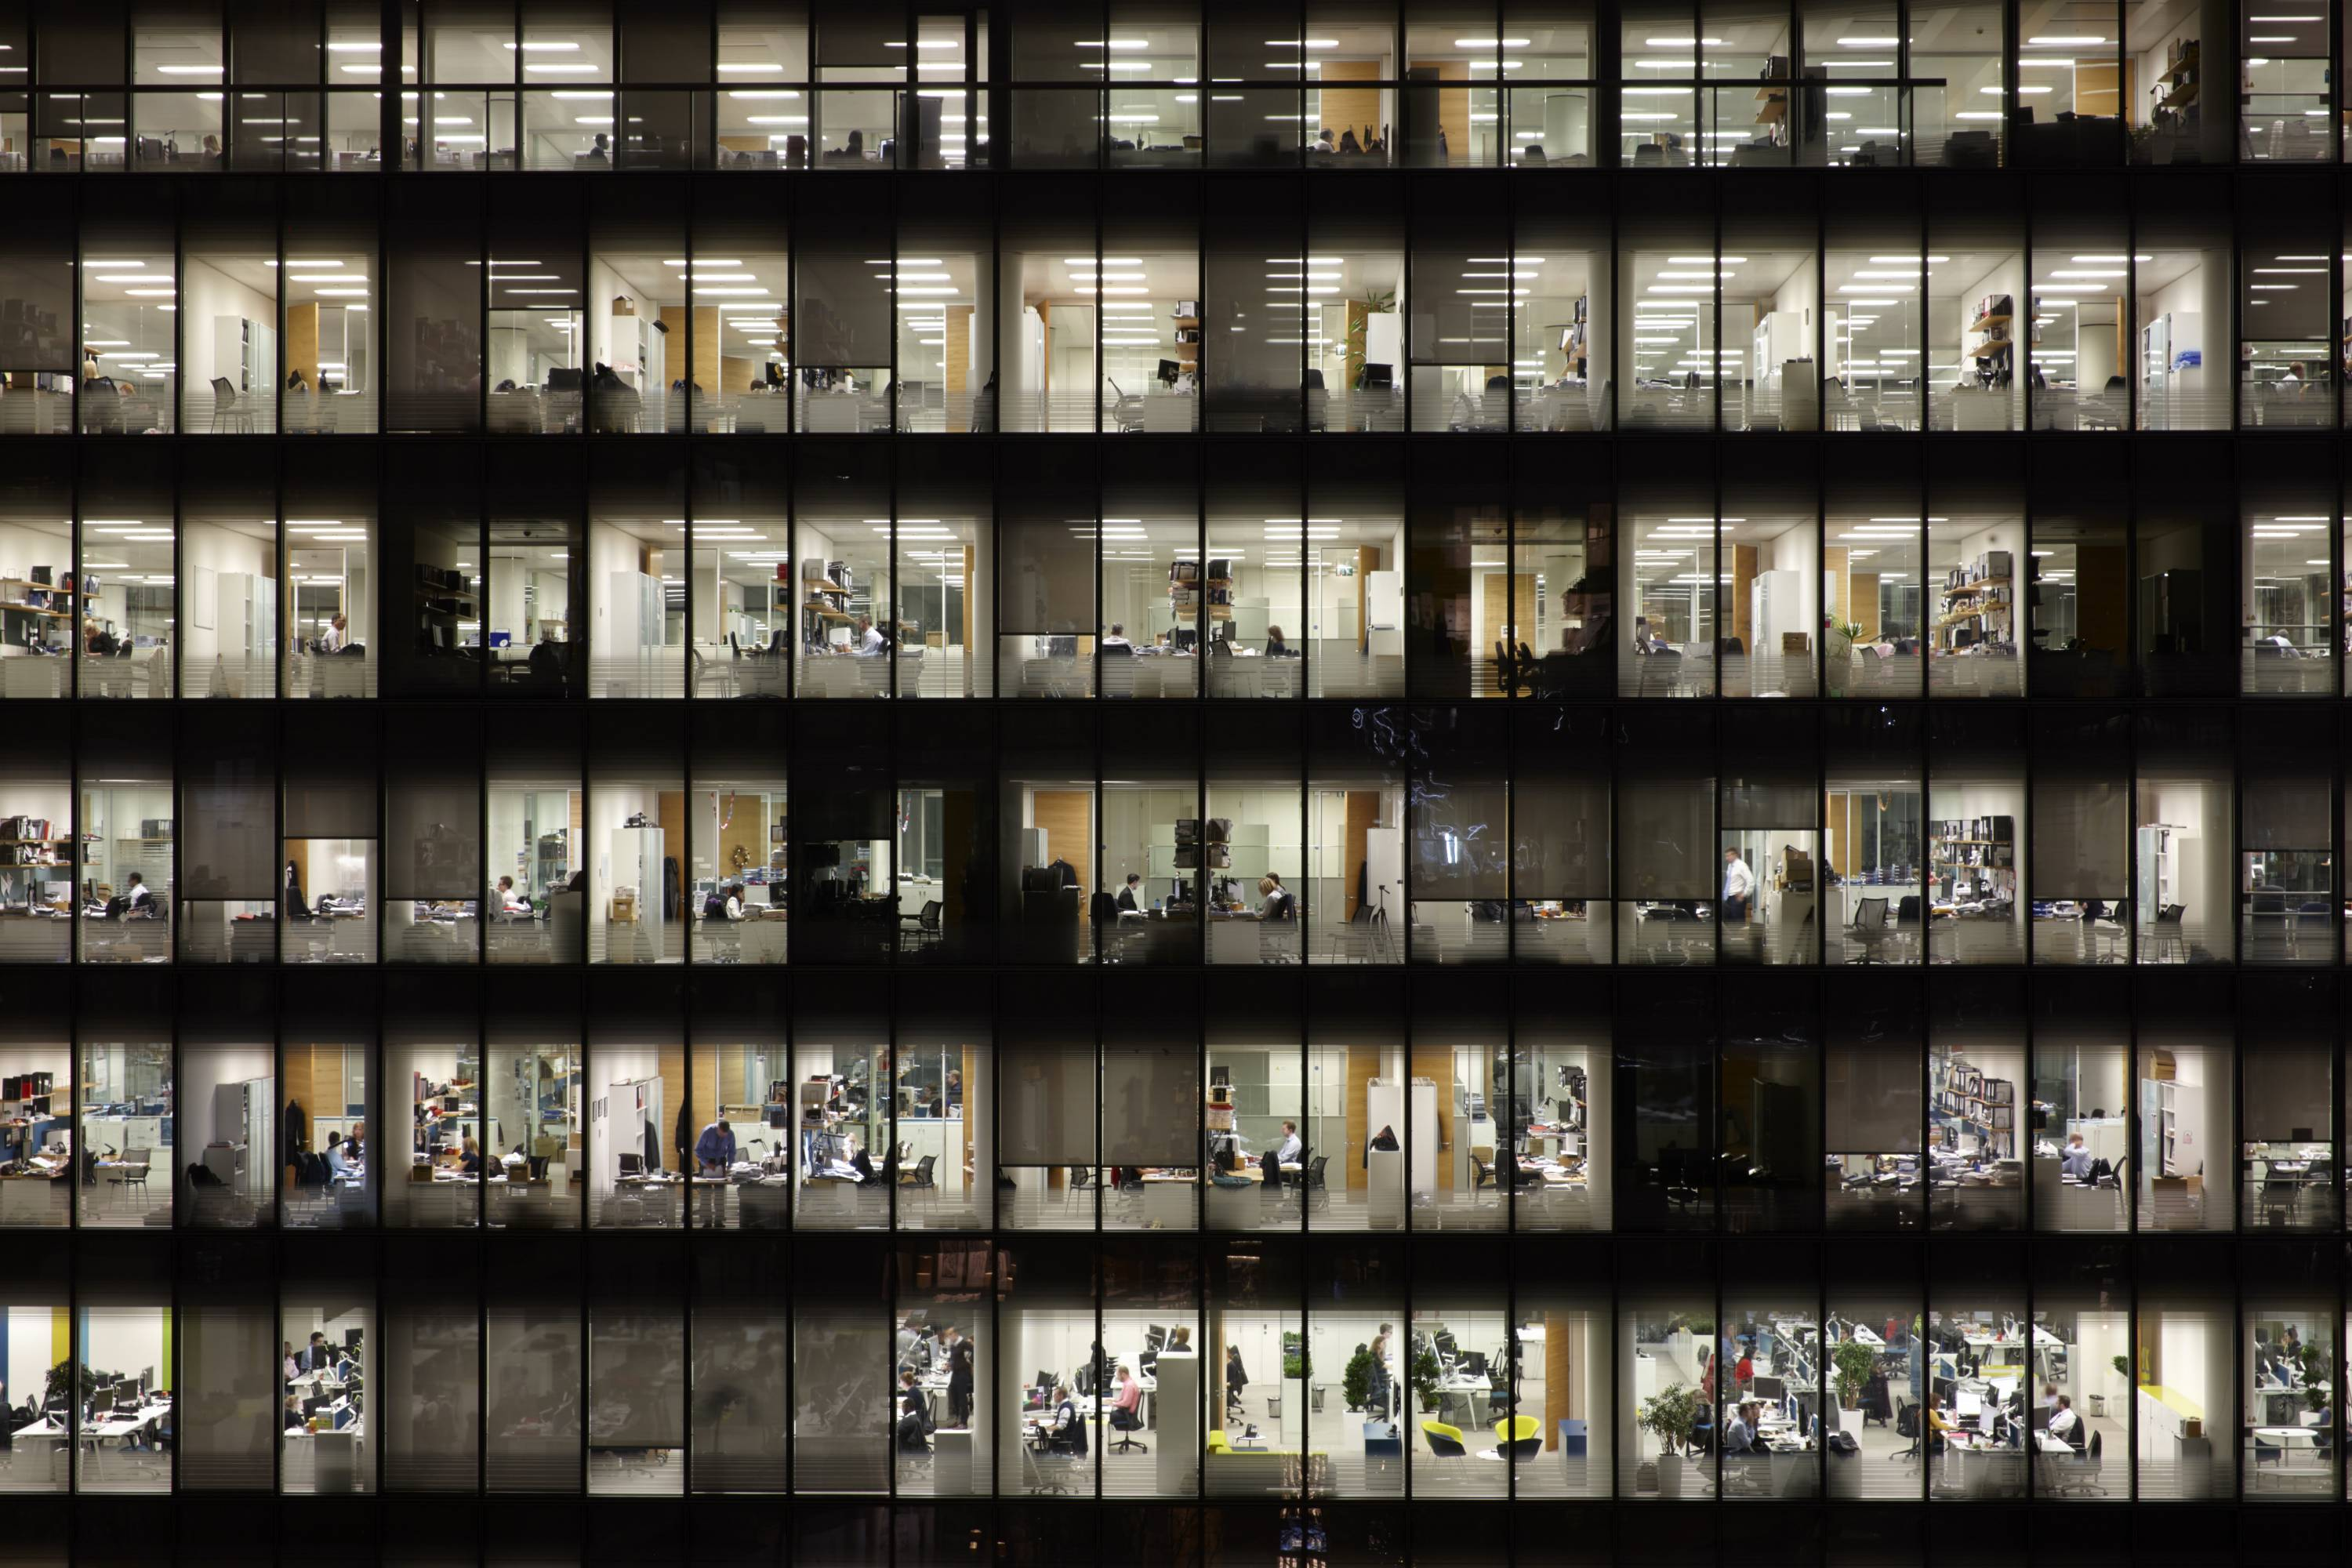 People working in Office building. Lonon, England